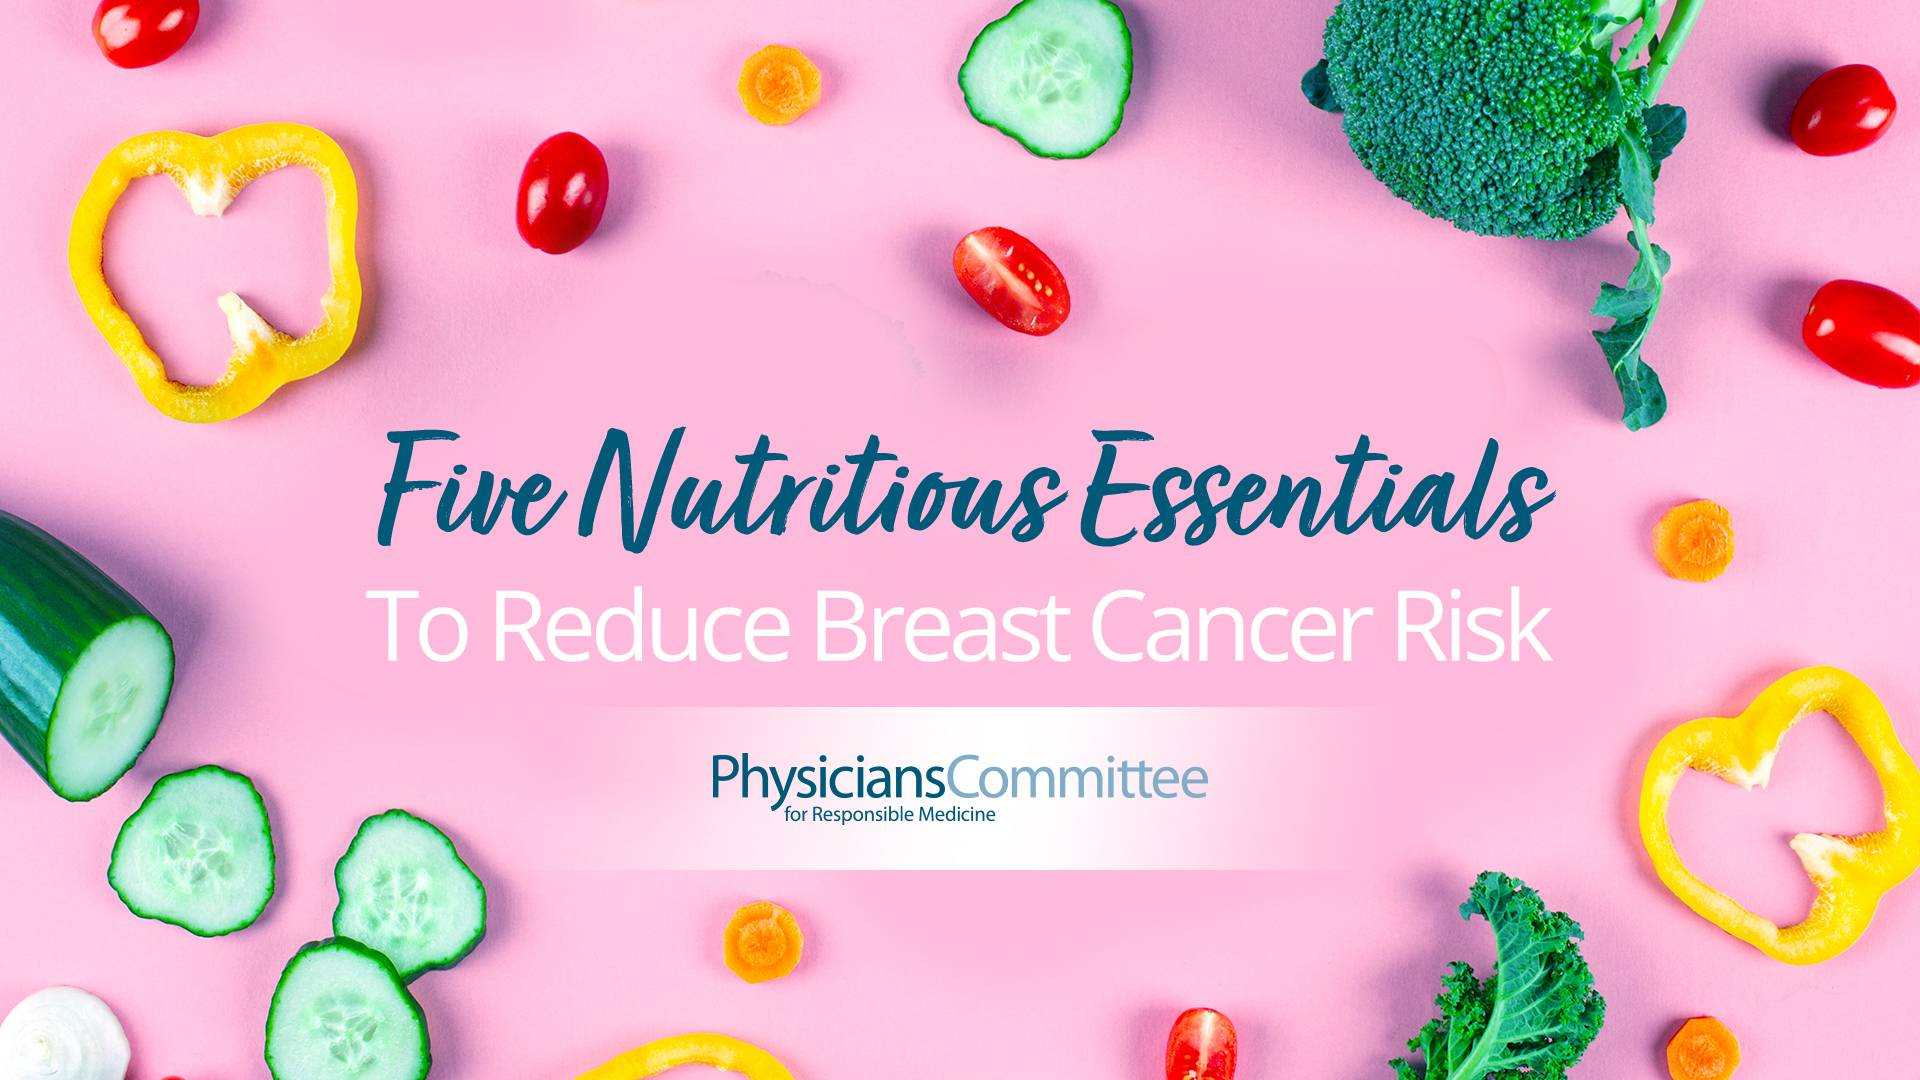 Five Nutritious Essentials To Reduce Breast Cancer Risk